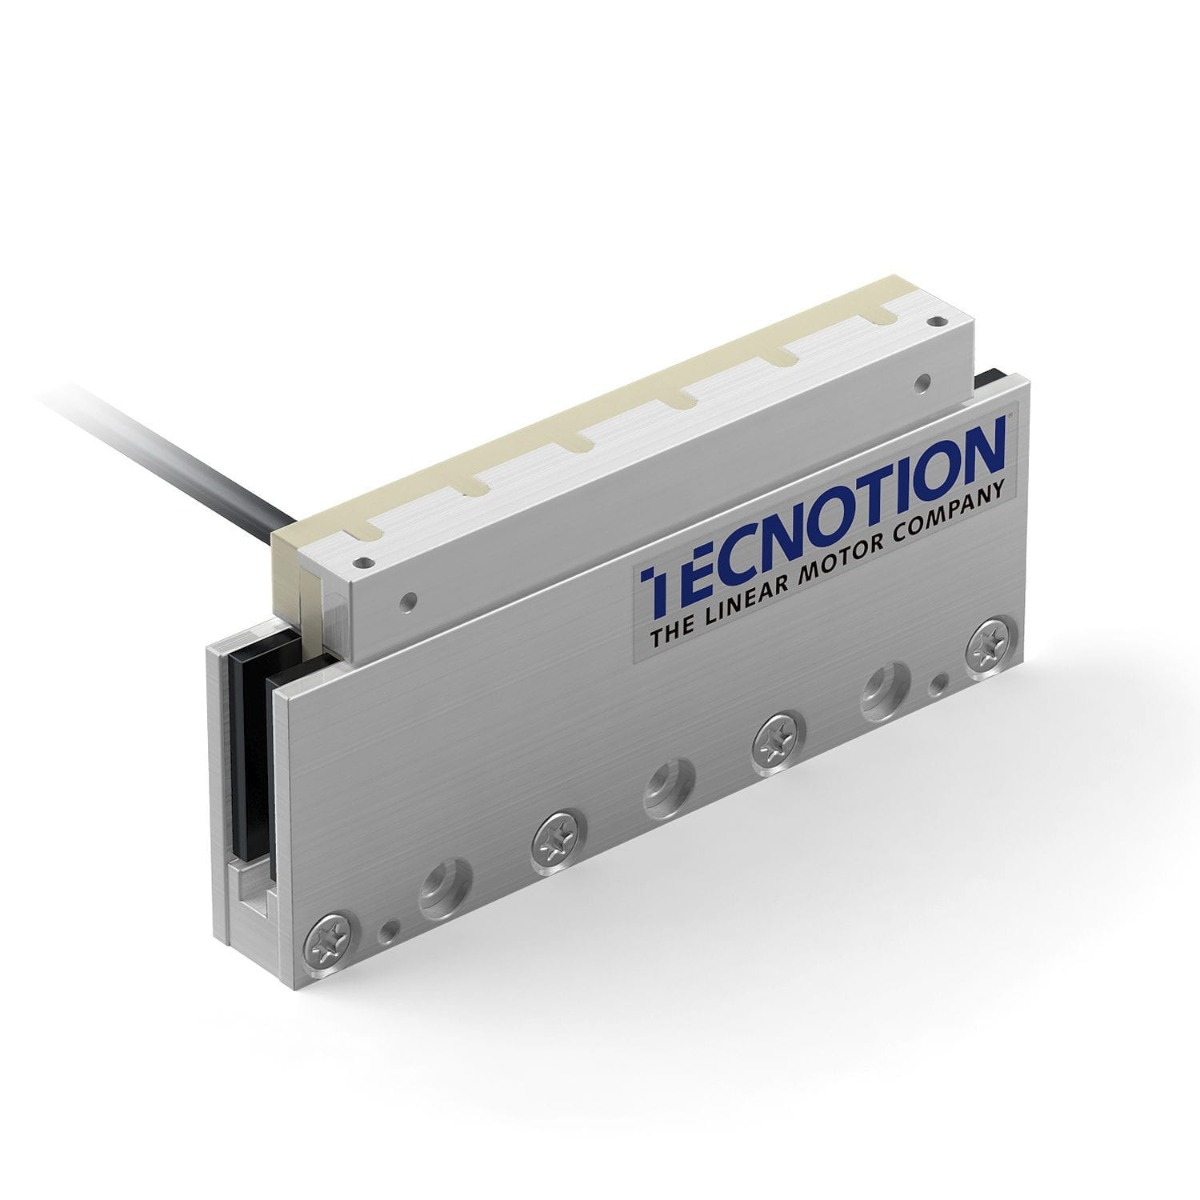 Tecnotion Ironless Linear Motor Series